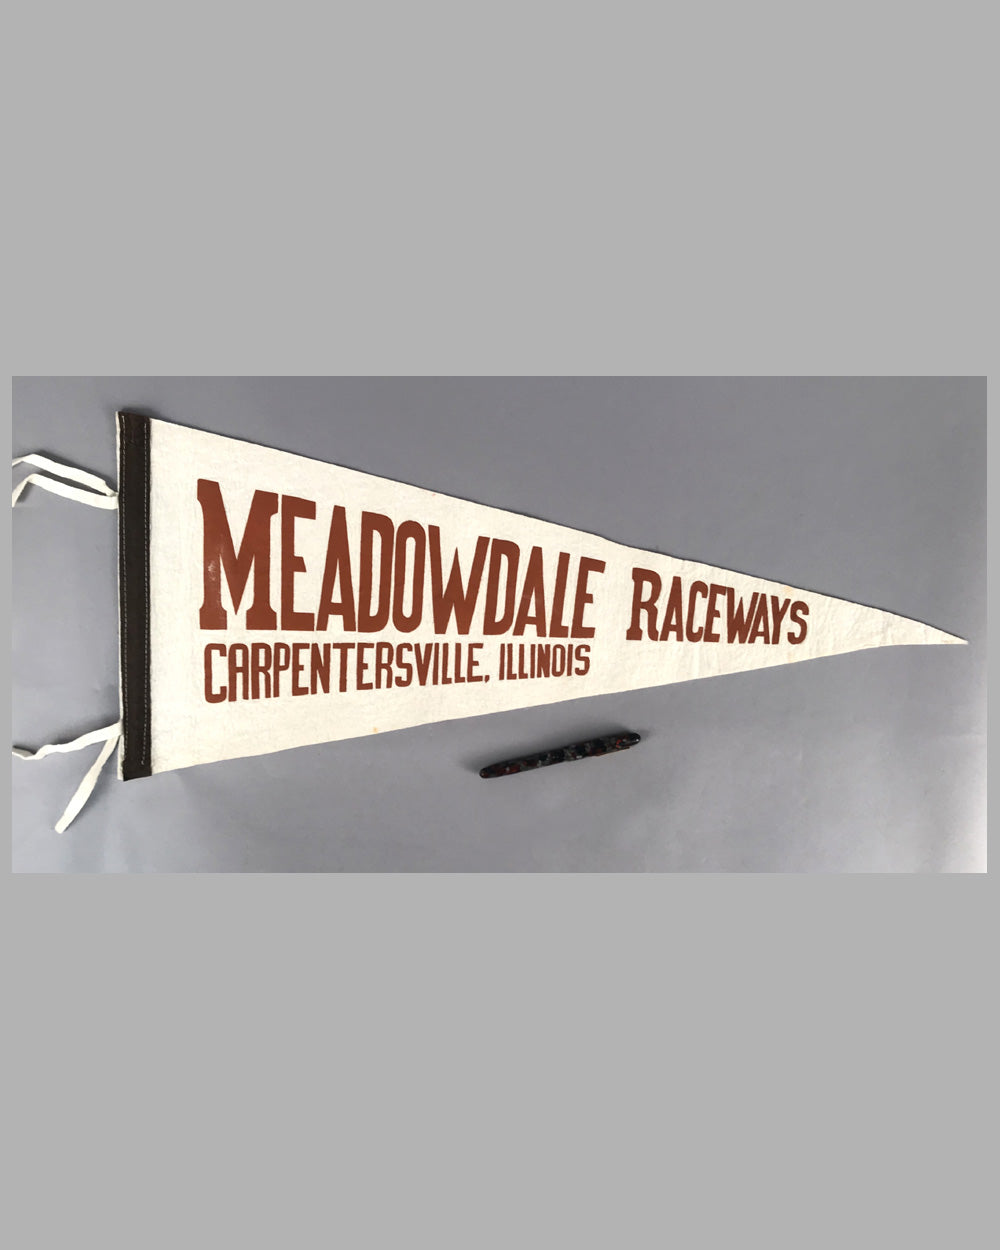 Meadowdale Raceways Carpentersville, Illinois pennant